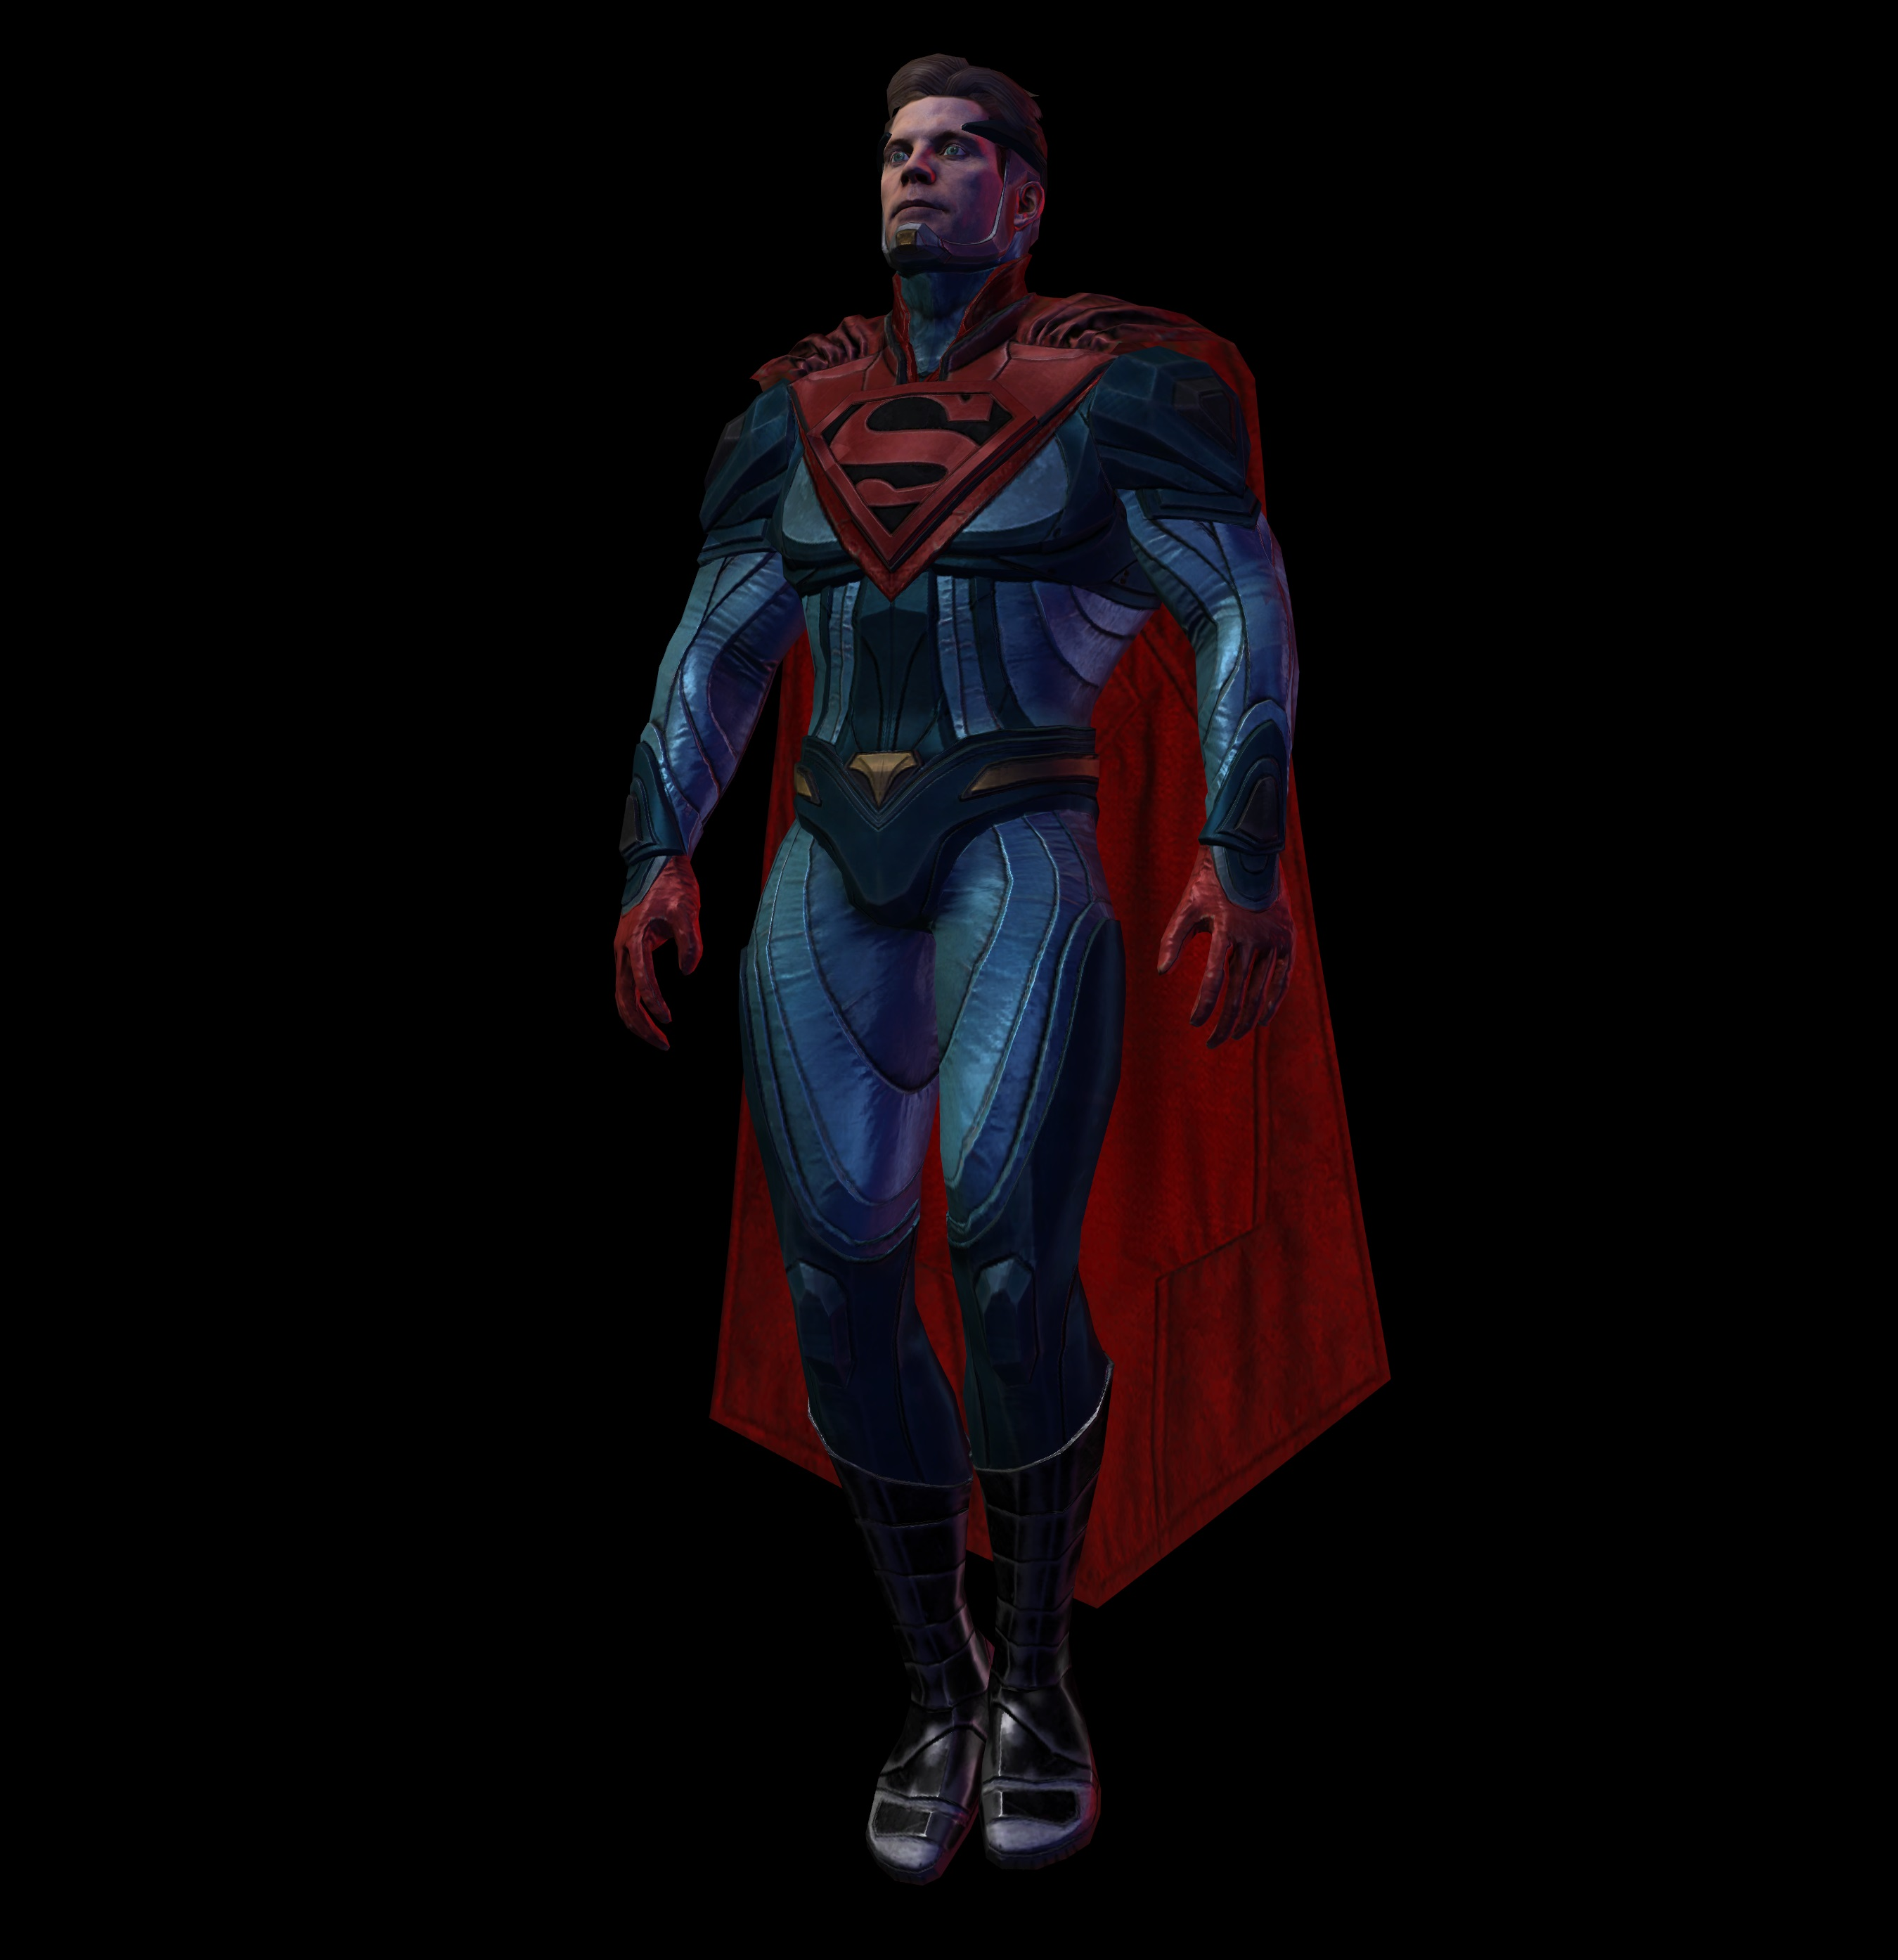 Xnalara Injustice Mobile Injustice 2 Superman By